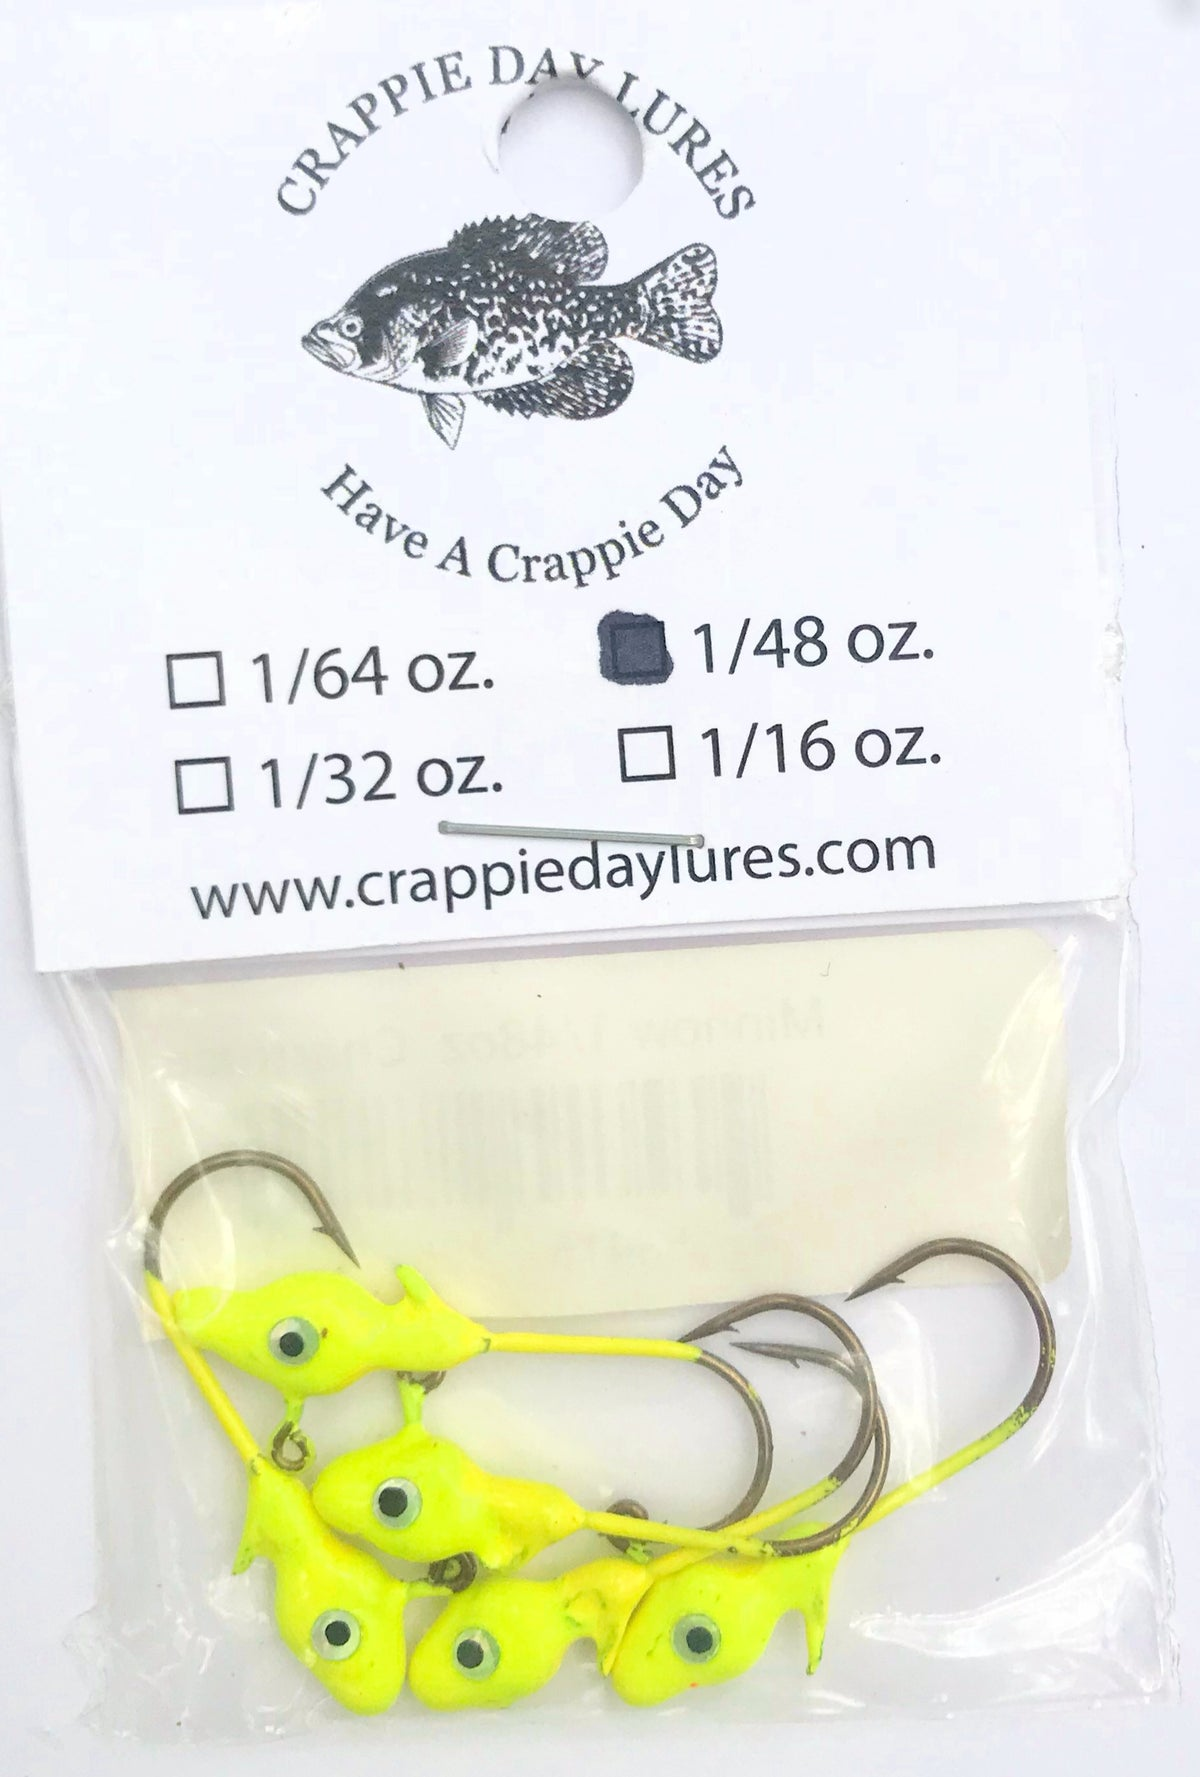 Crappie Day Minnowhead Jigheads (5 pk) - Angler's Headquarters